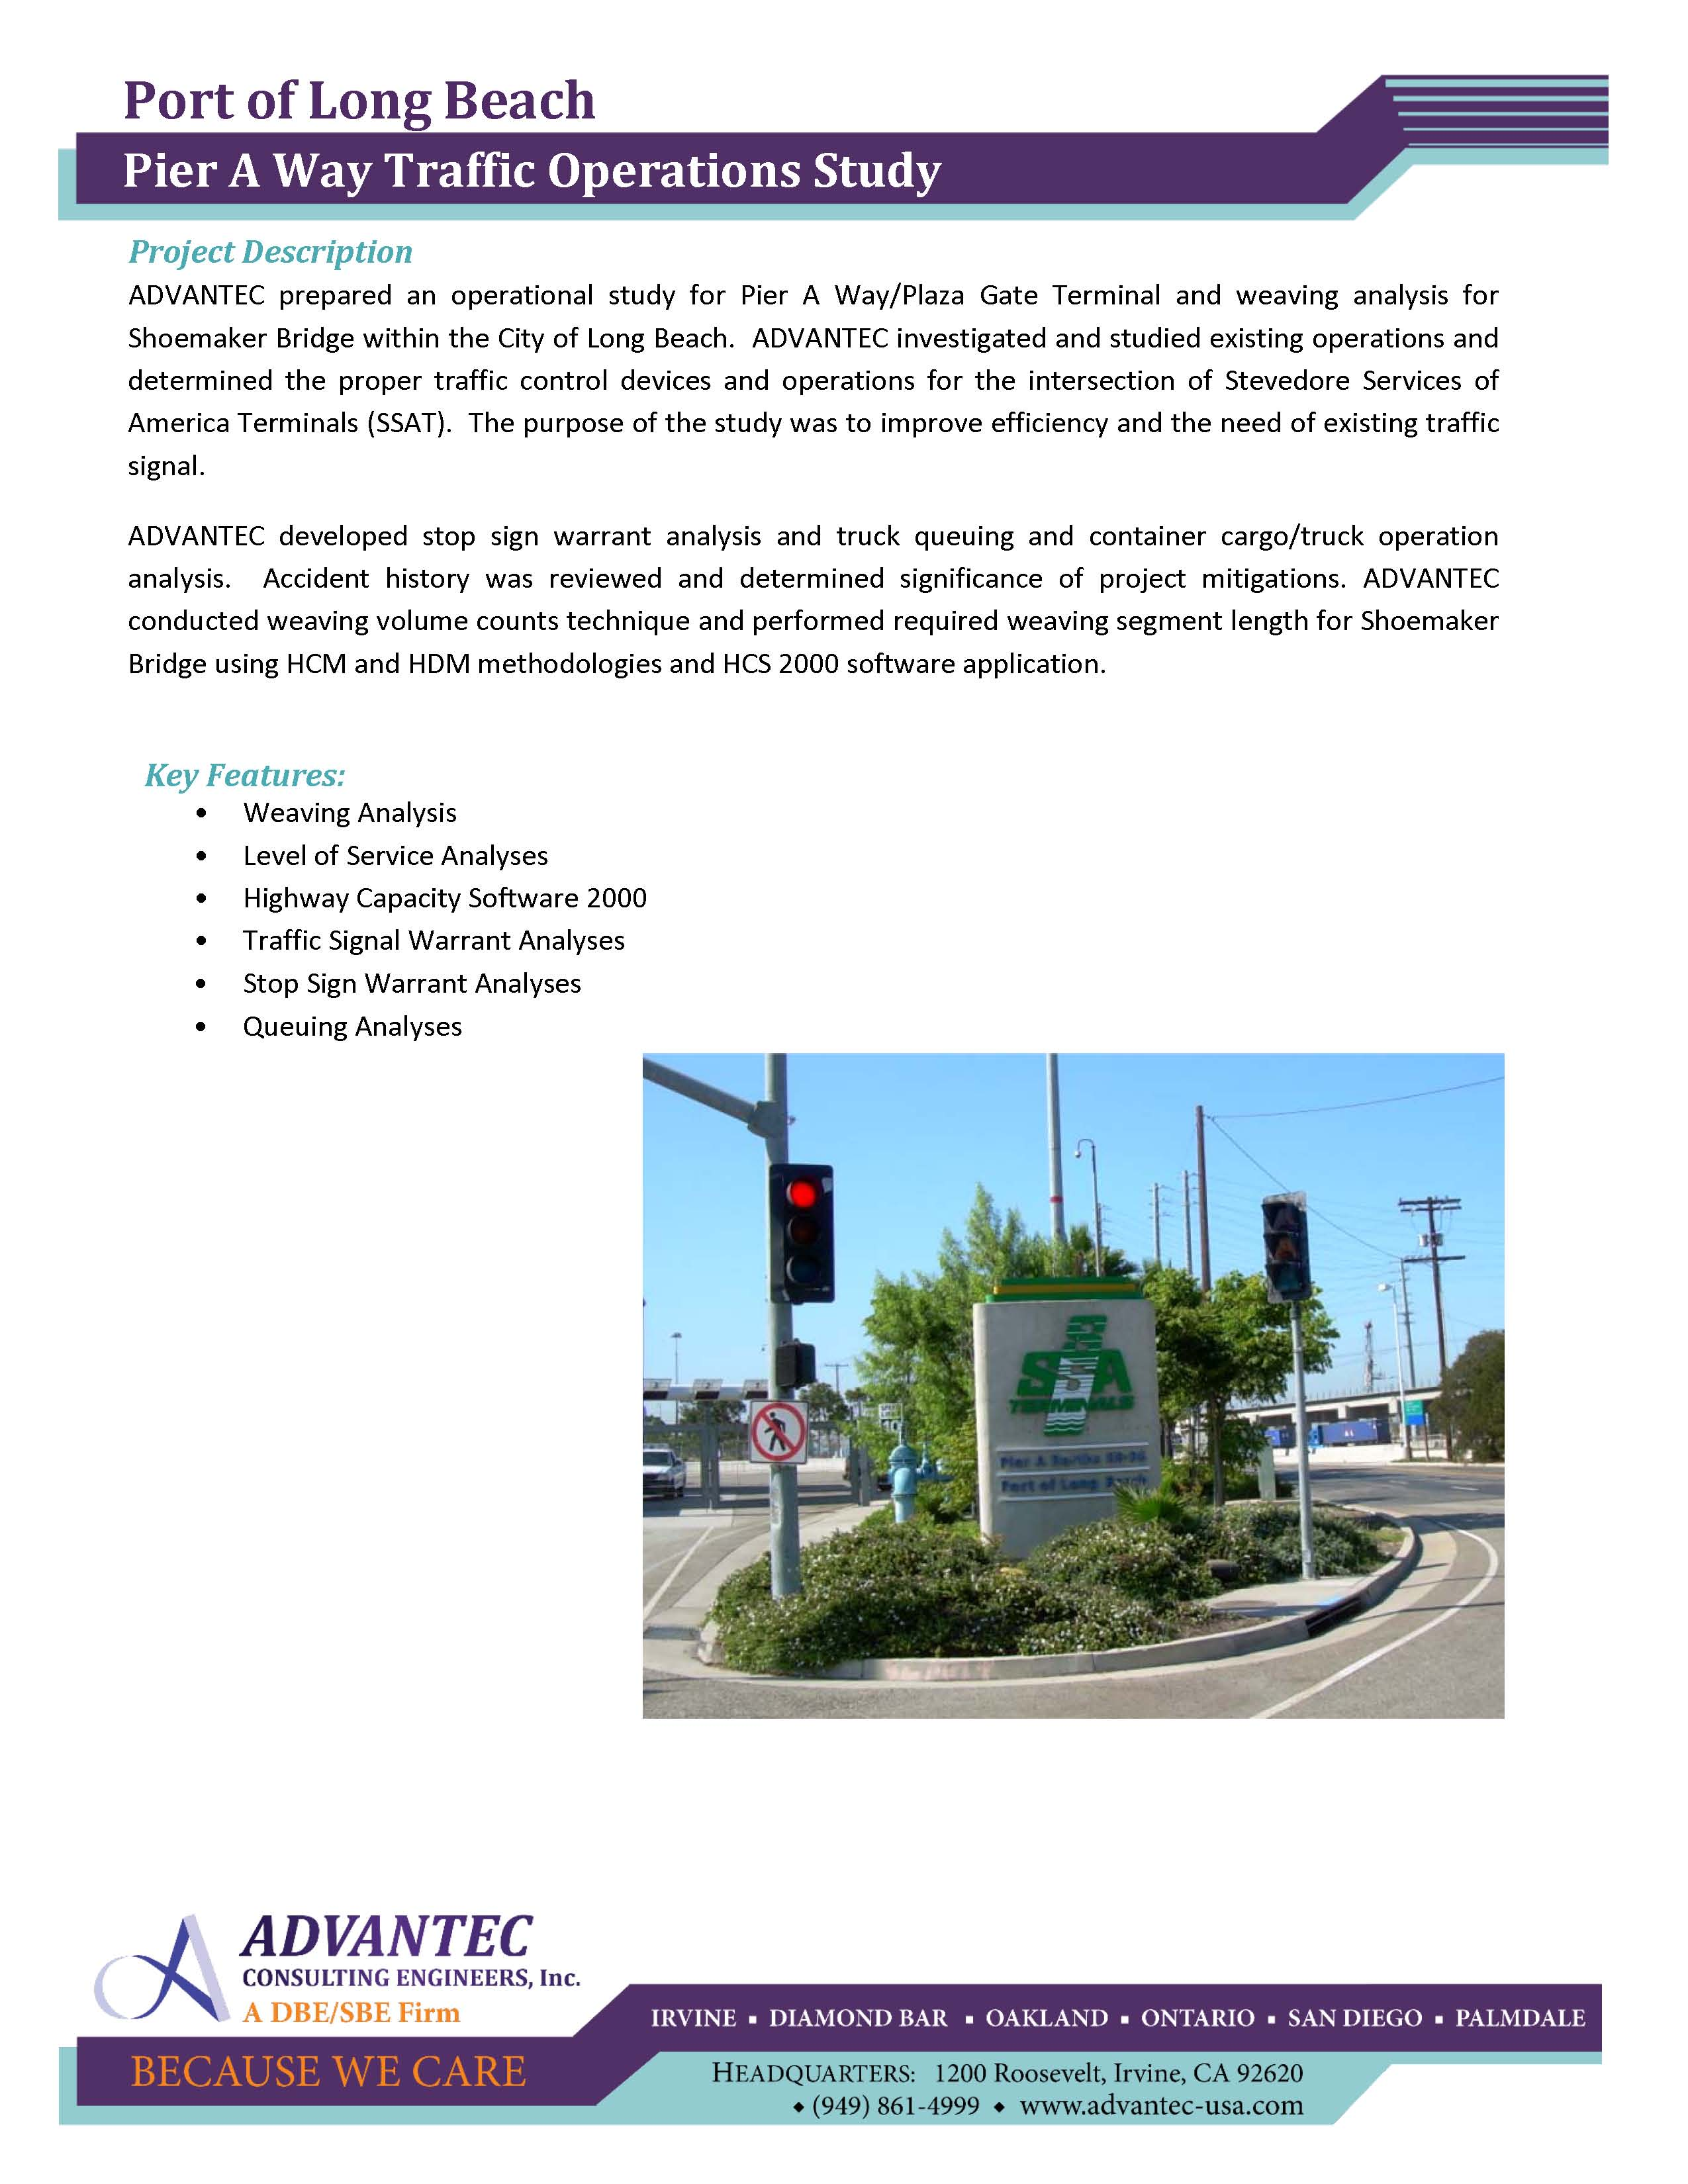 ^WEB-Port of Long Beach-Pier A Way Traffic Operations Study